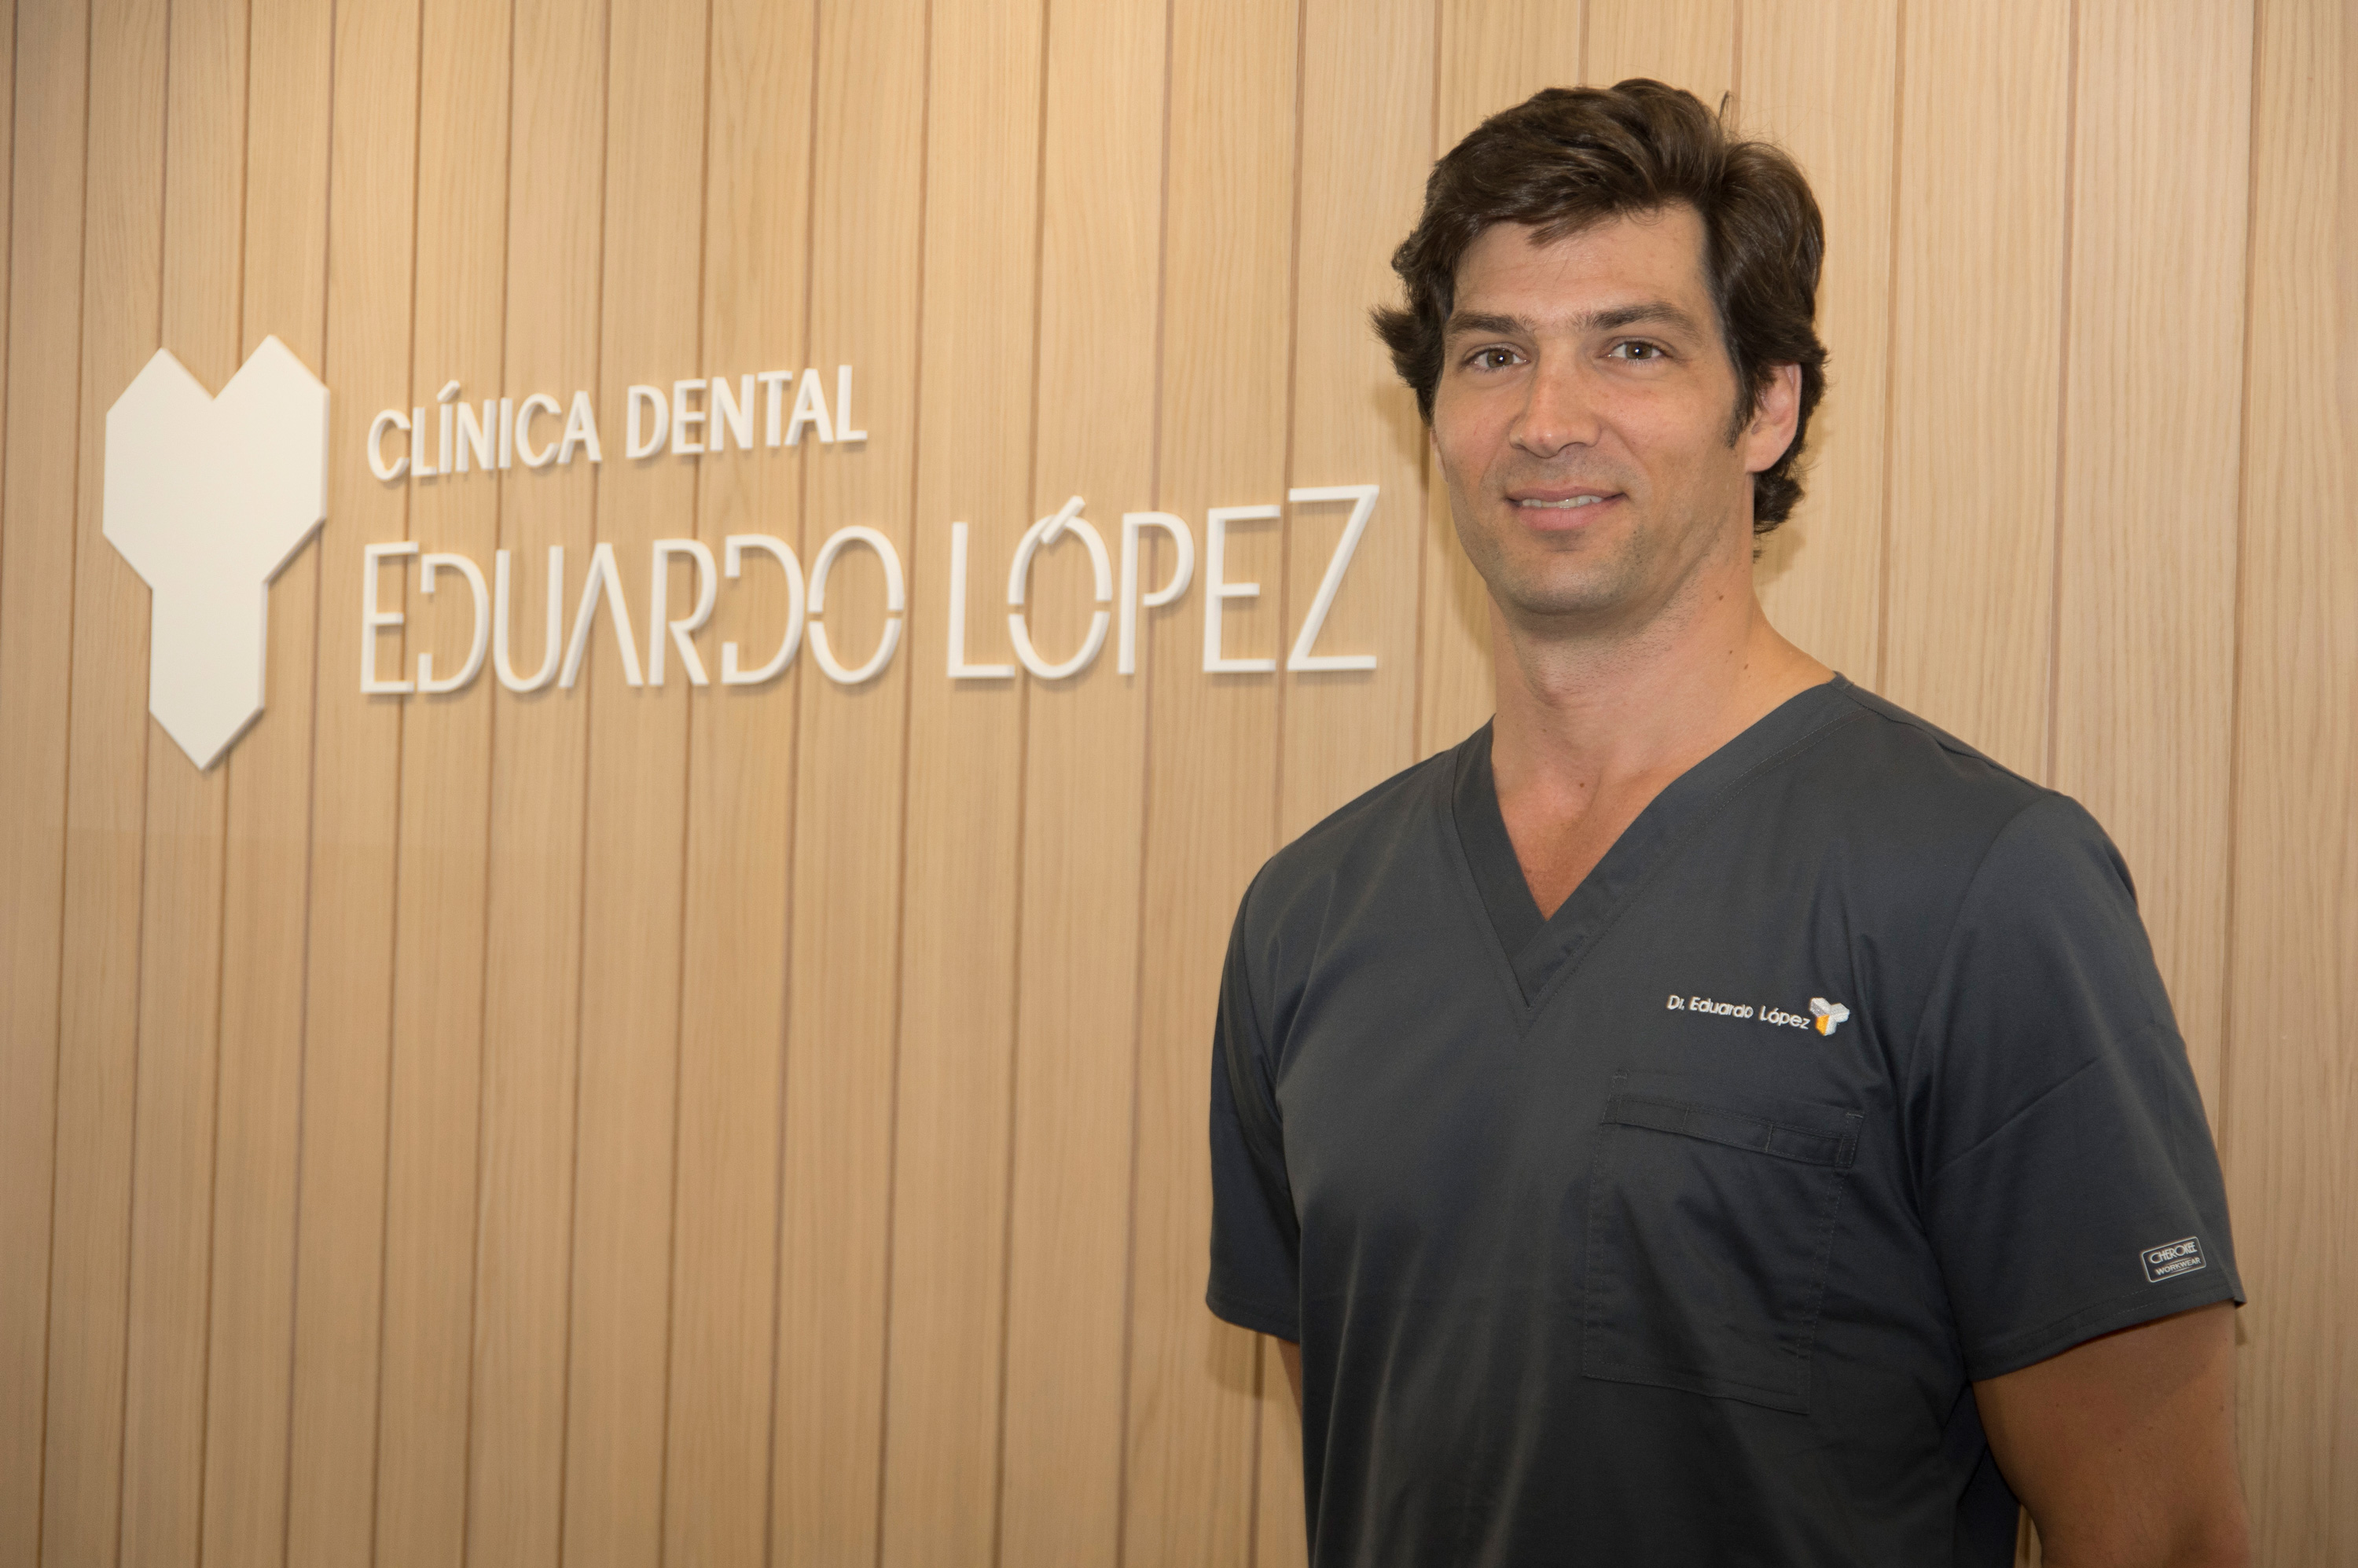 Clinica dental Eduardo López